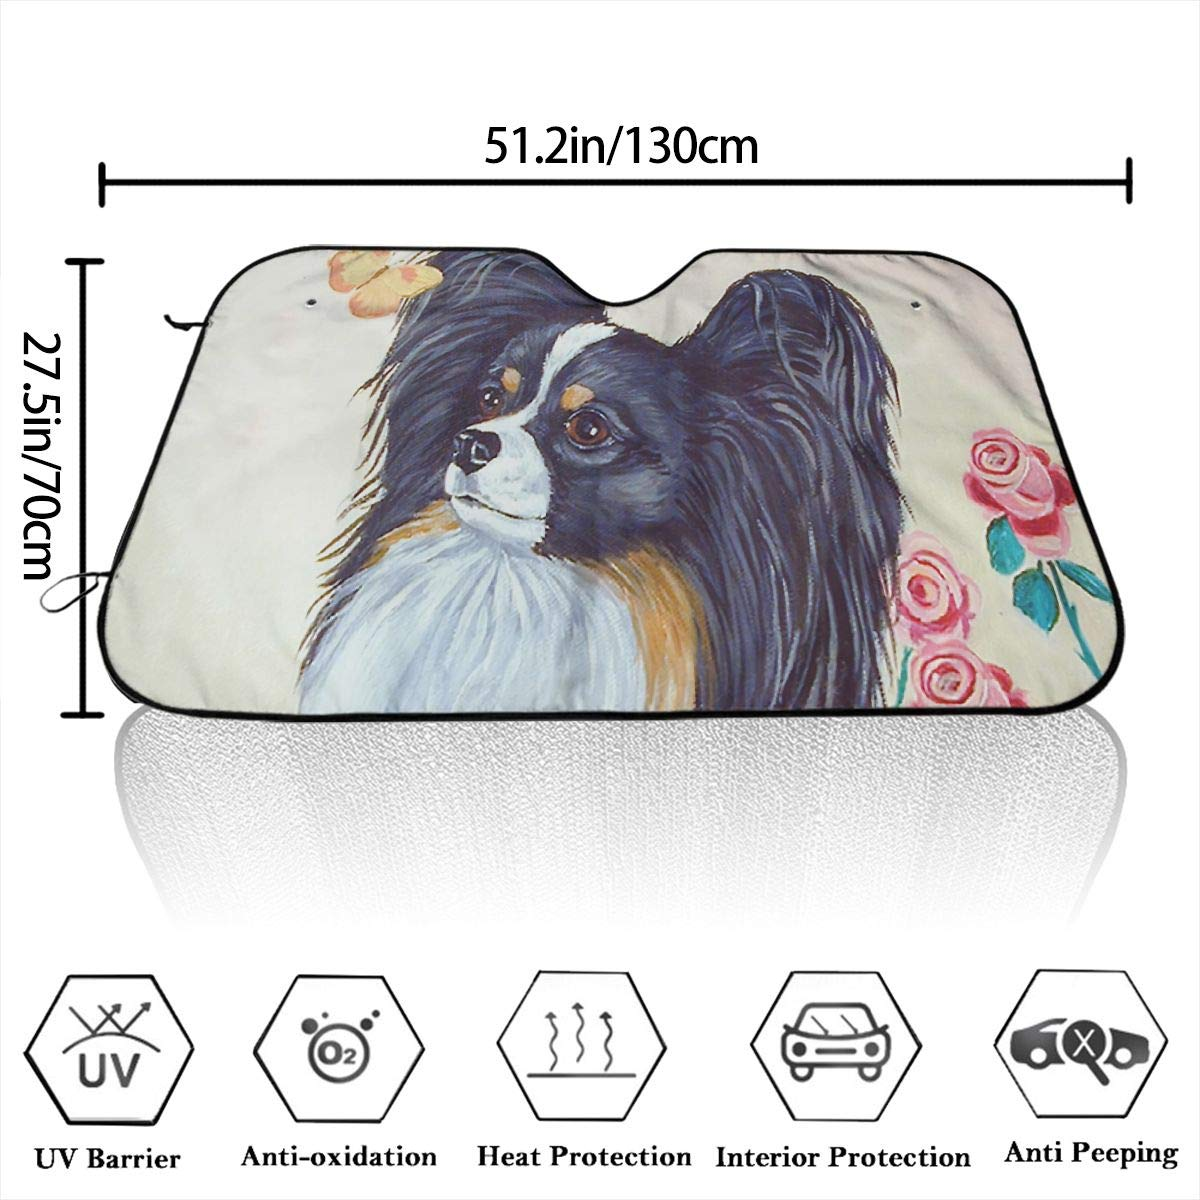 Papillon Dog Butterfly Gold Rose Themed Windshield Sun Shade Car Windows Interior Cover Visor Kit Ornament Decor Outdoor Vehicle Accessories Sunshade Auto for Women Men